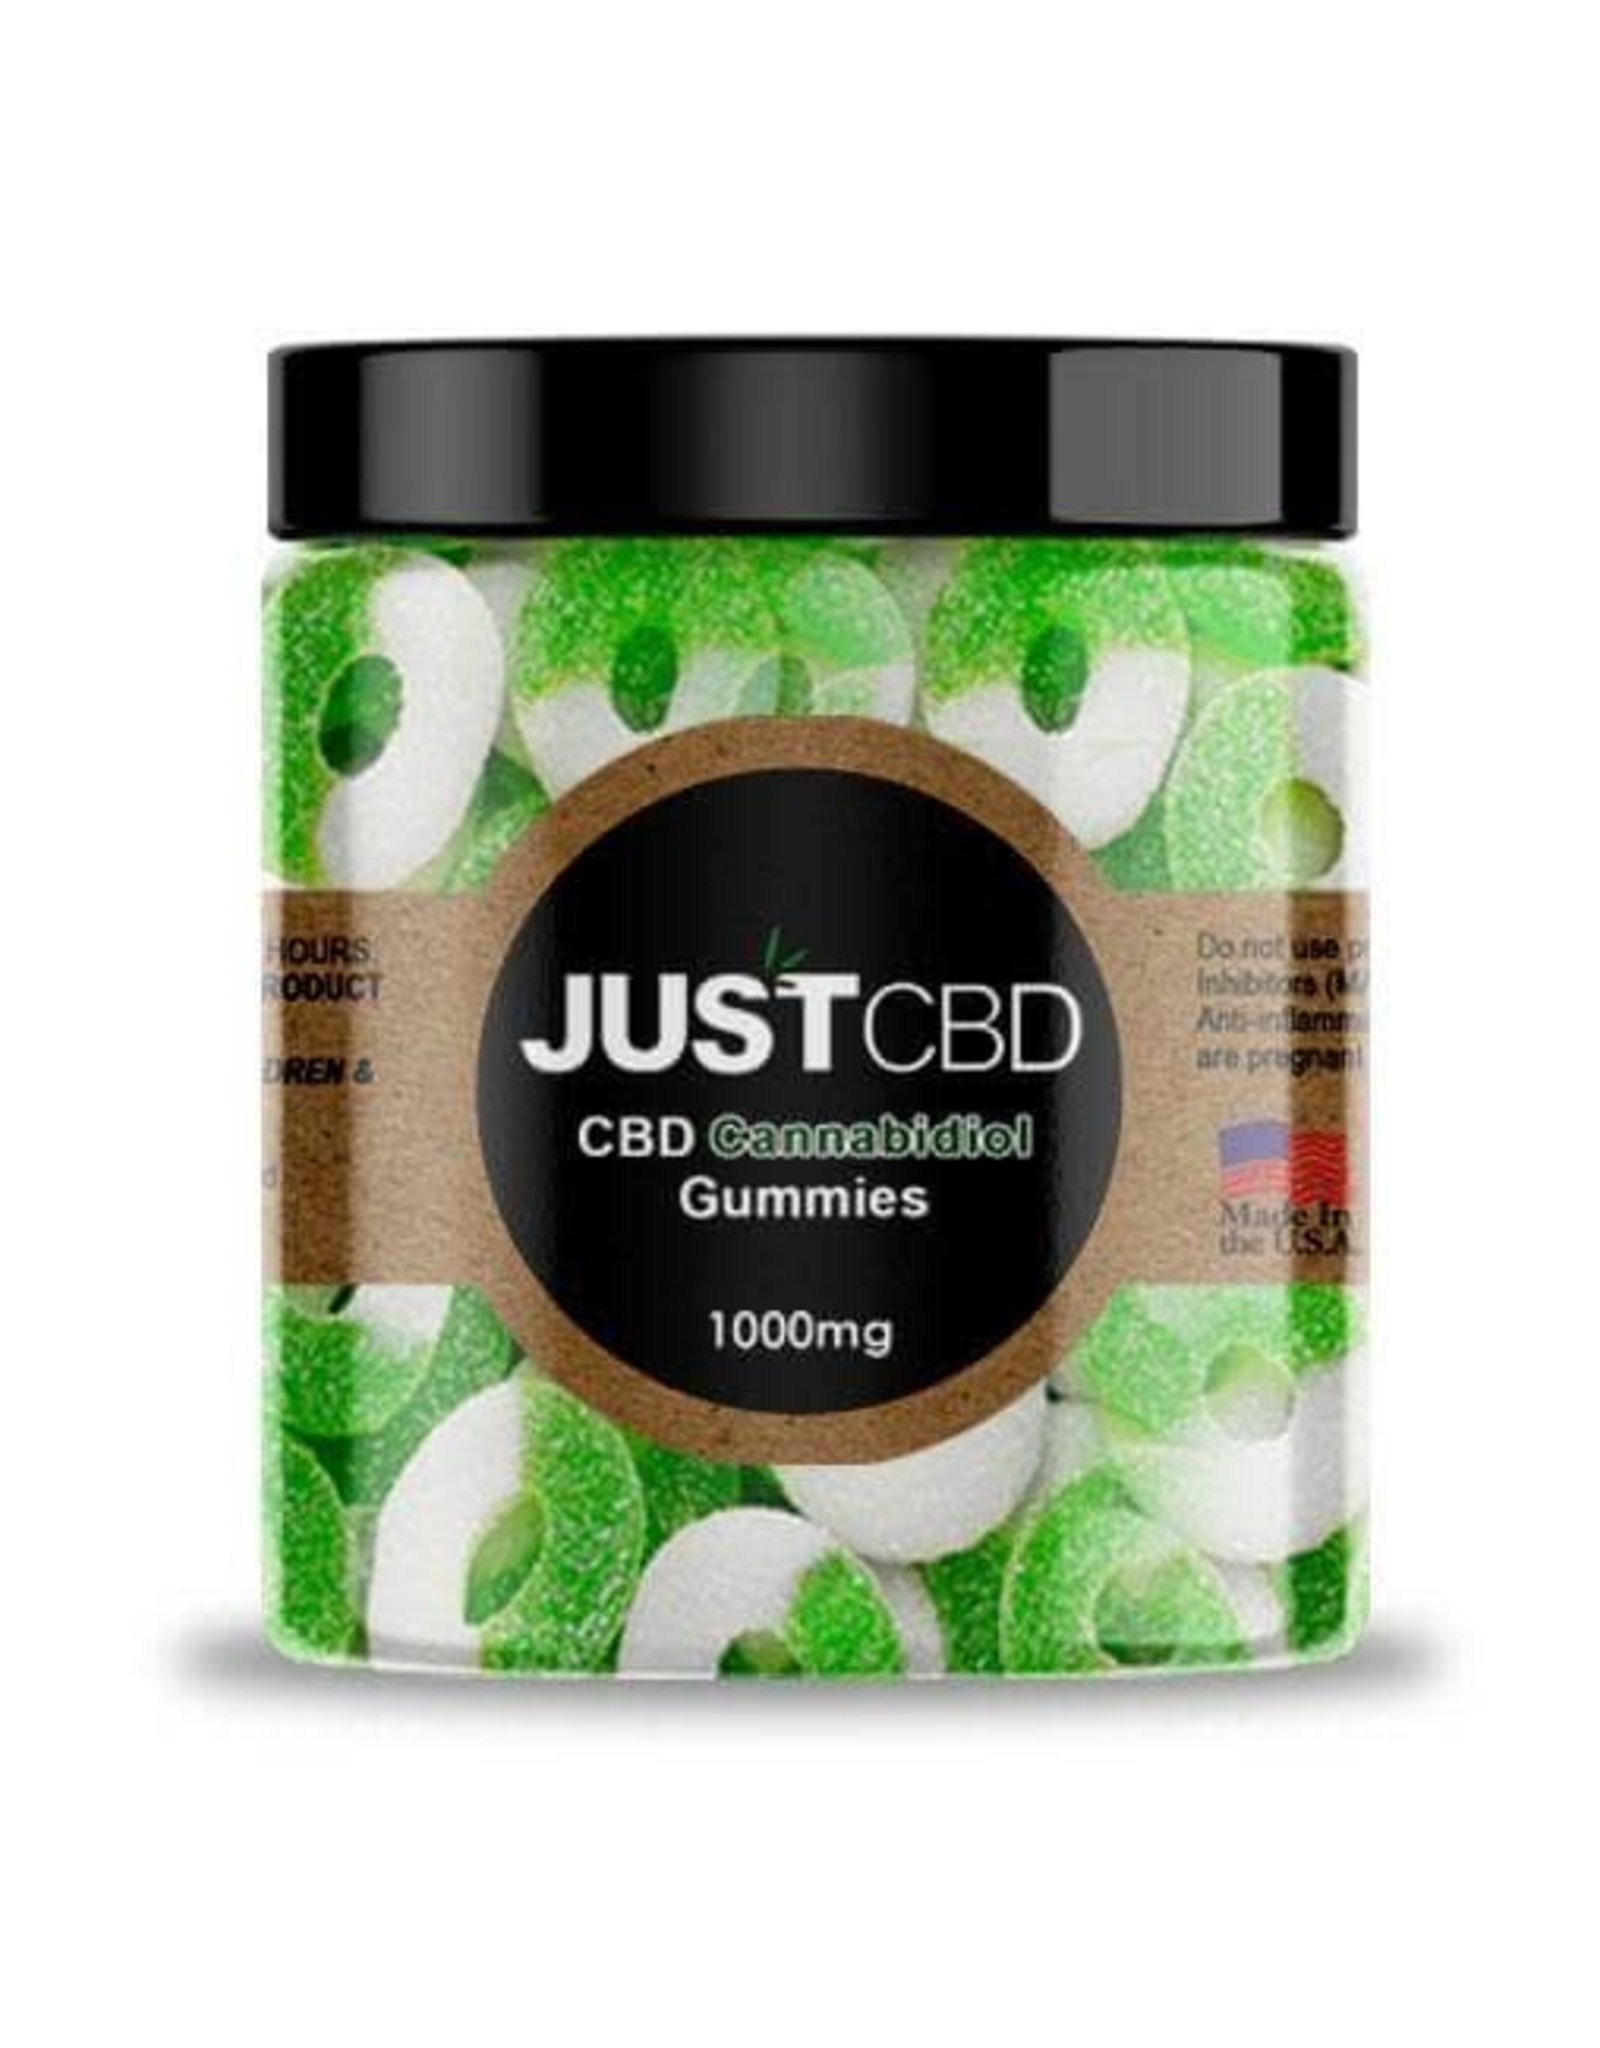 JUST CBD JustCBD 1000mg